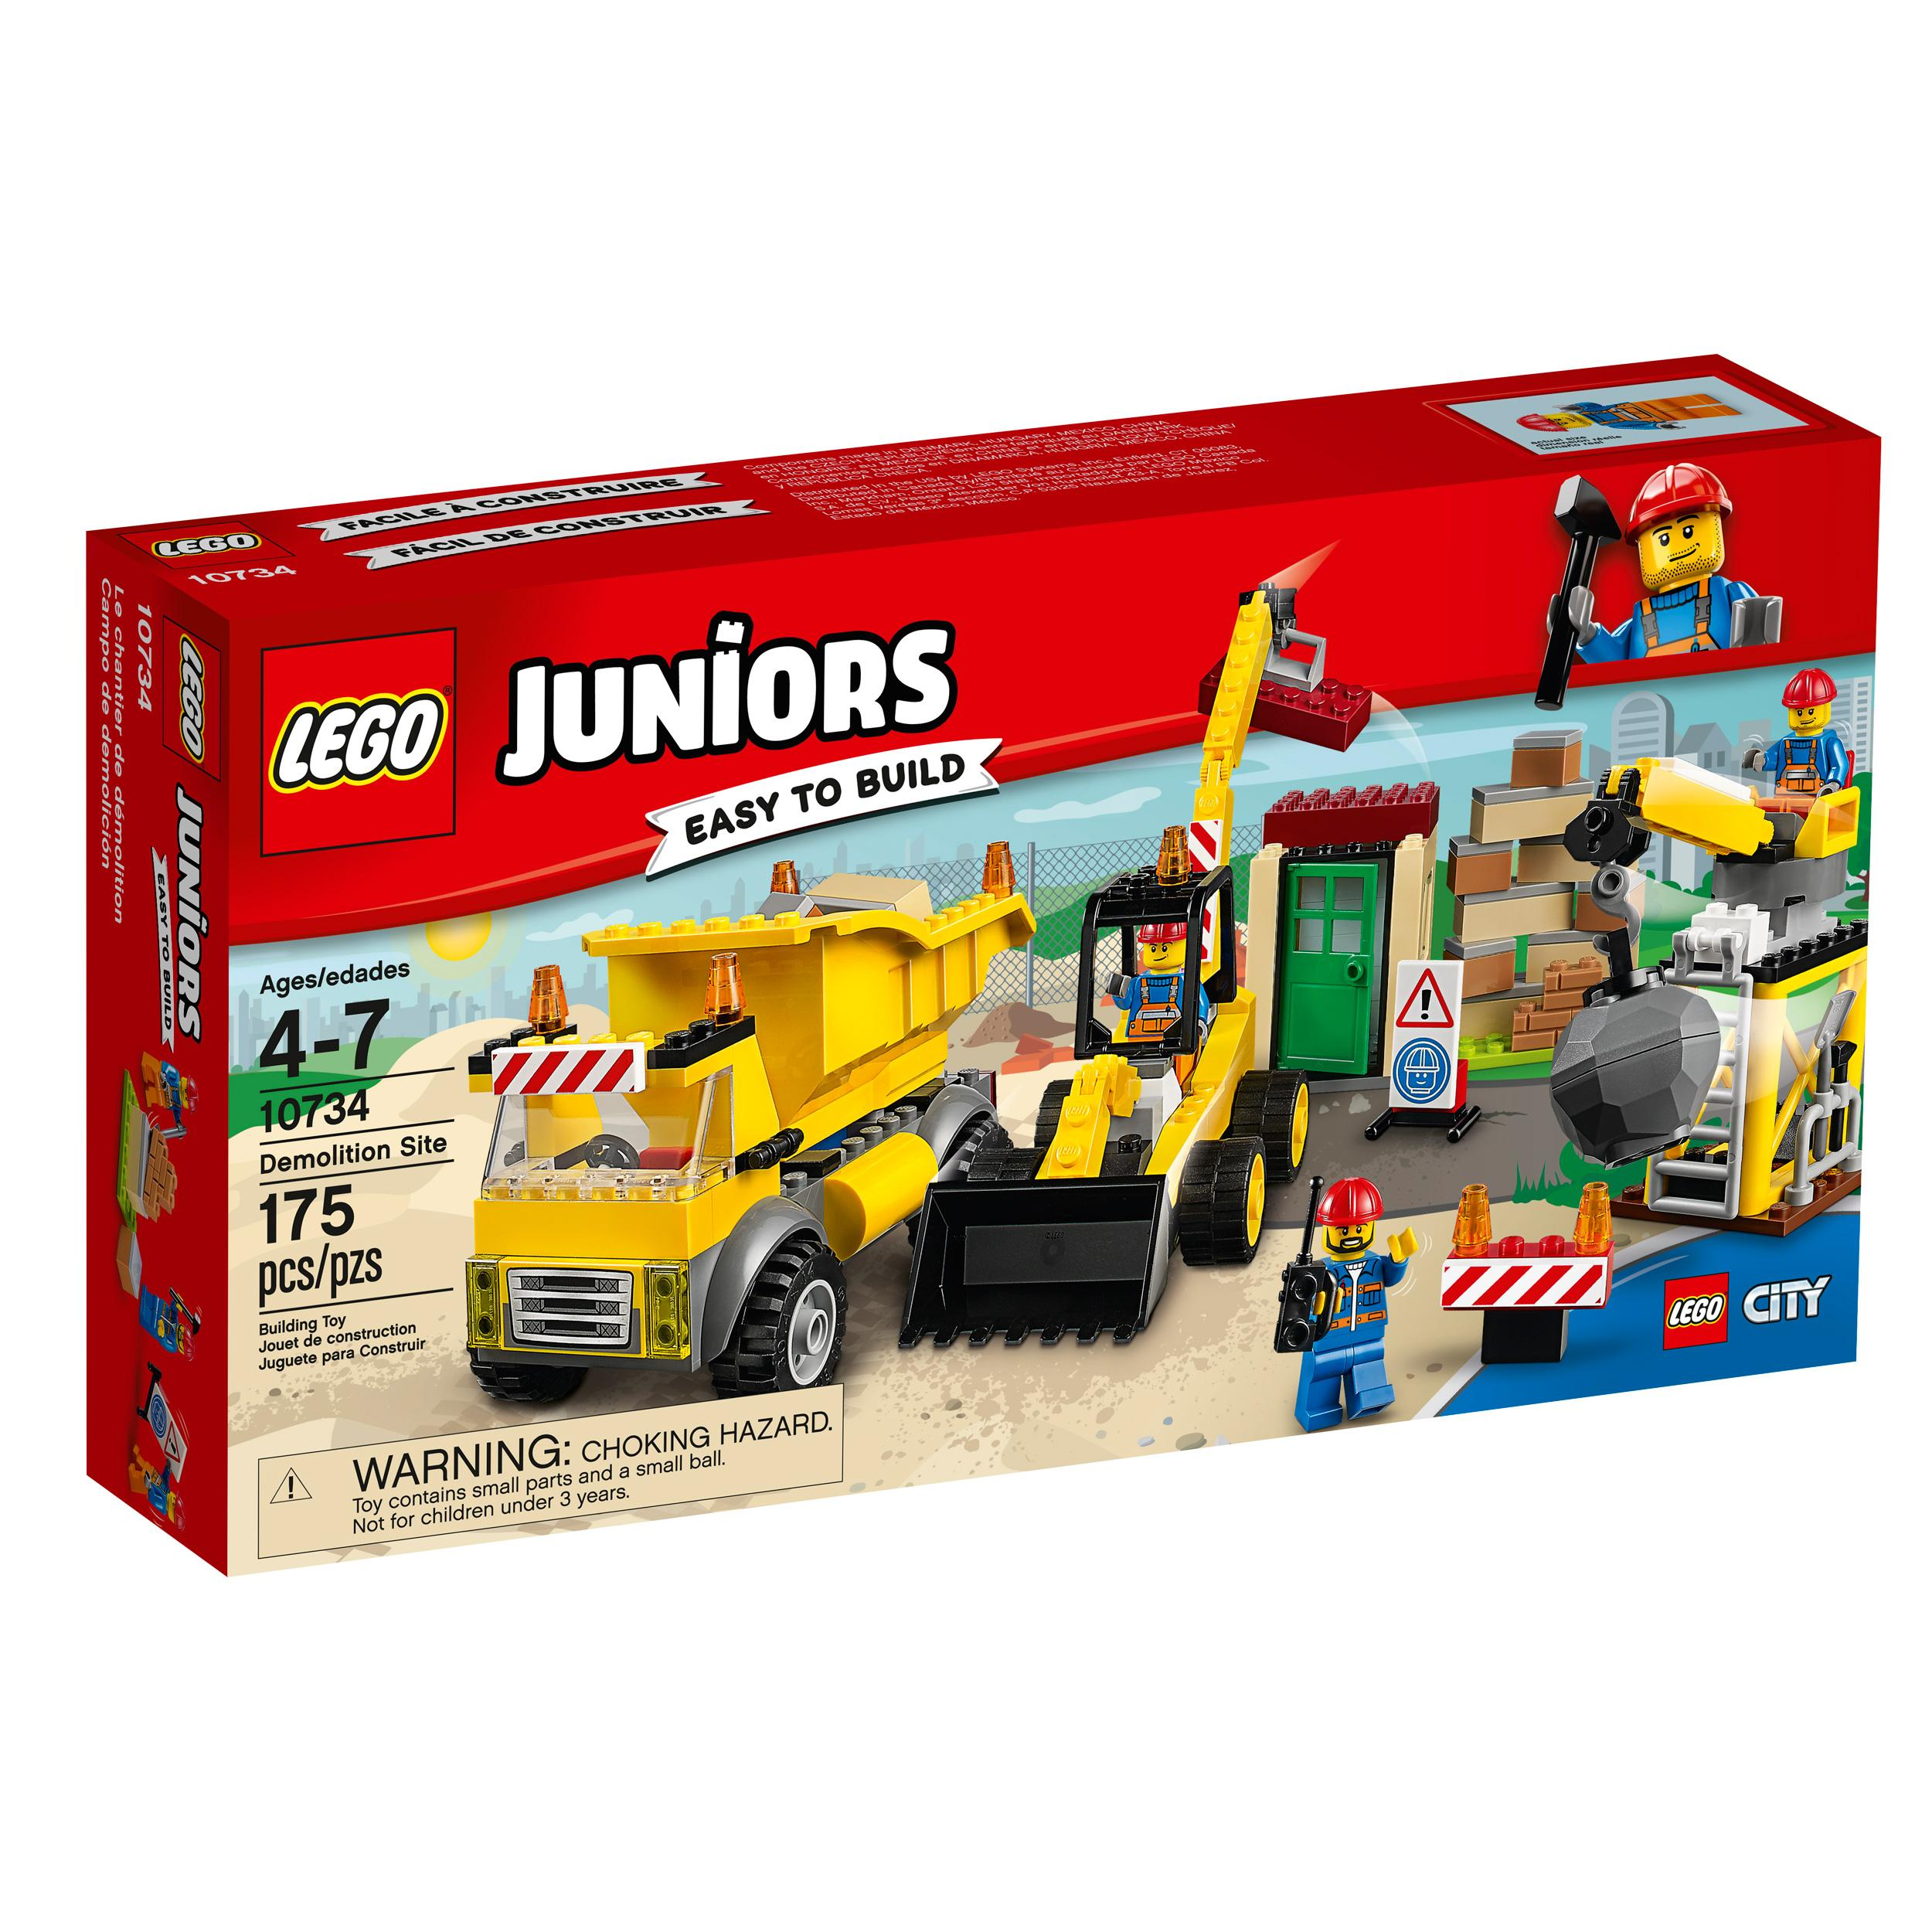 Construction Site Toys For Boys : Amazon lego juniors demolition site toy for